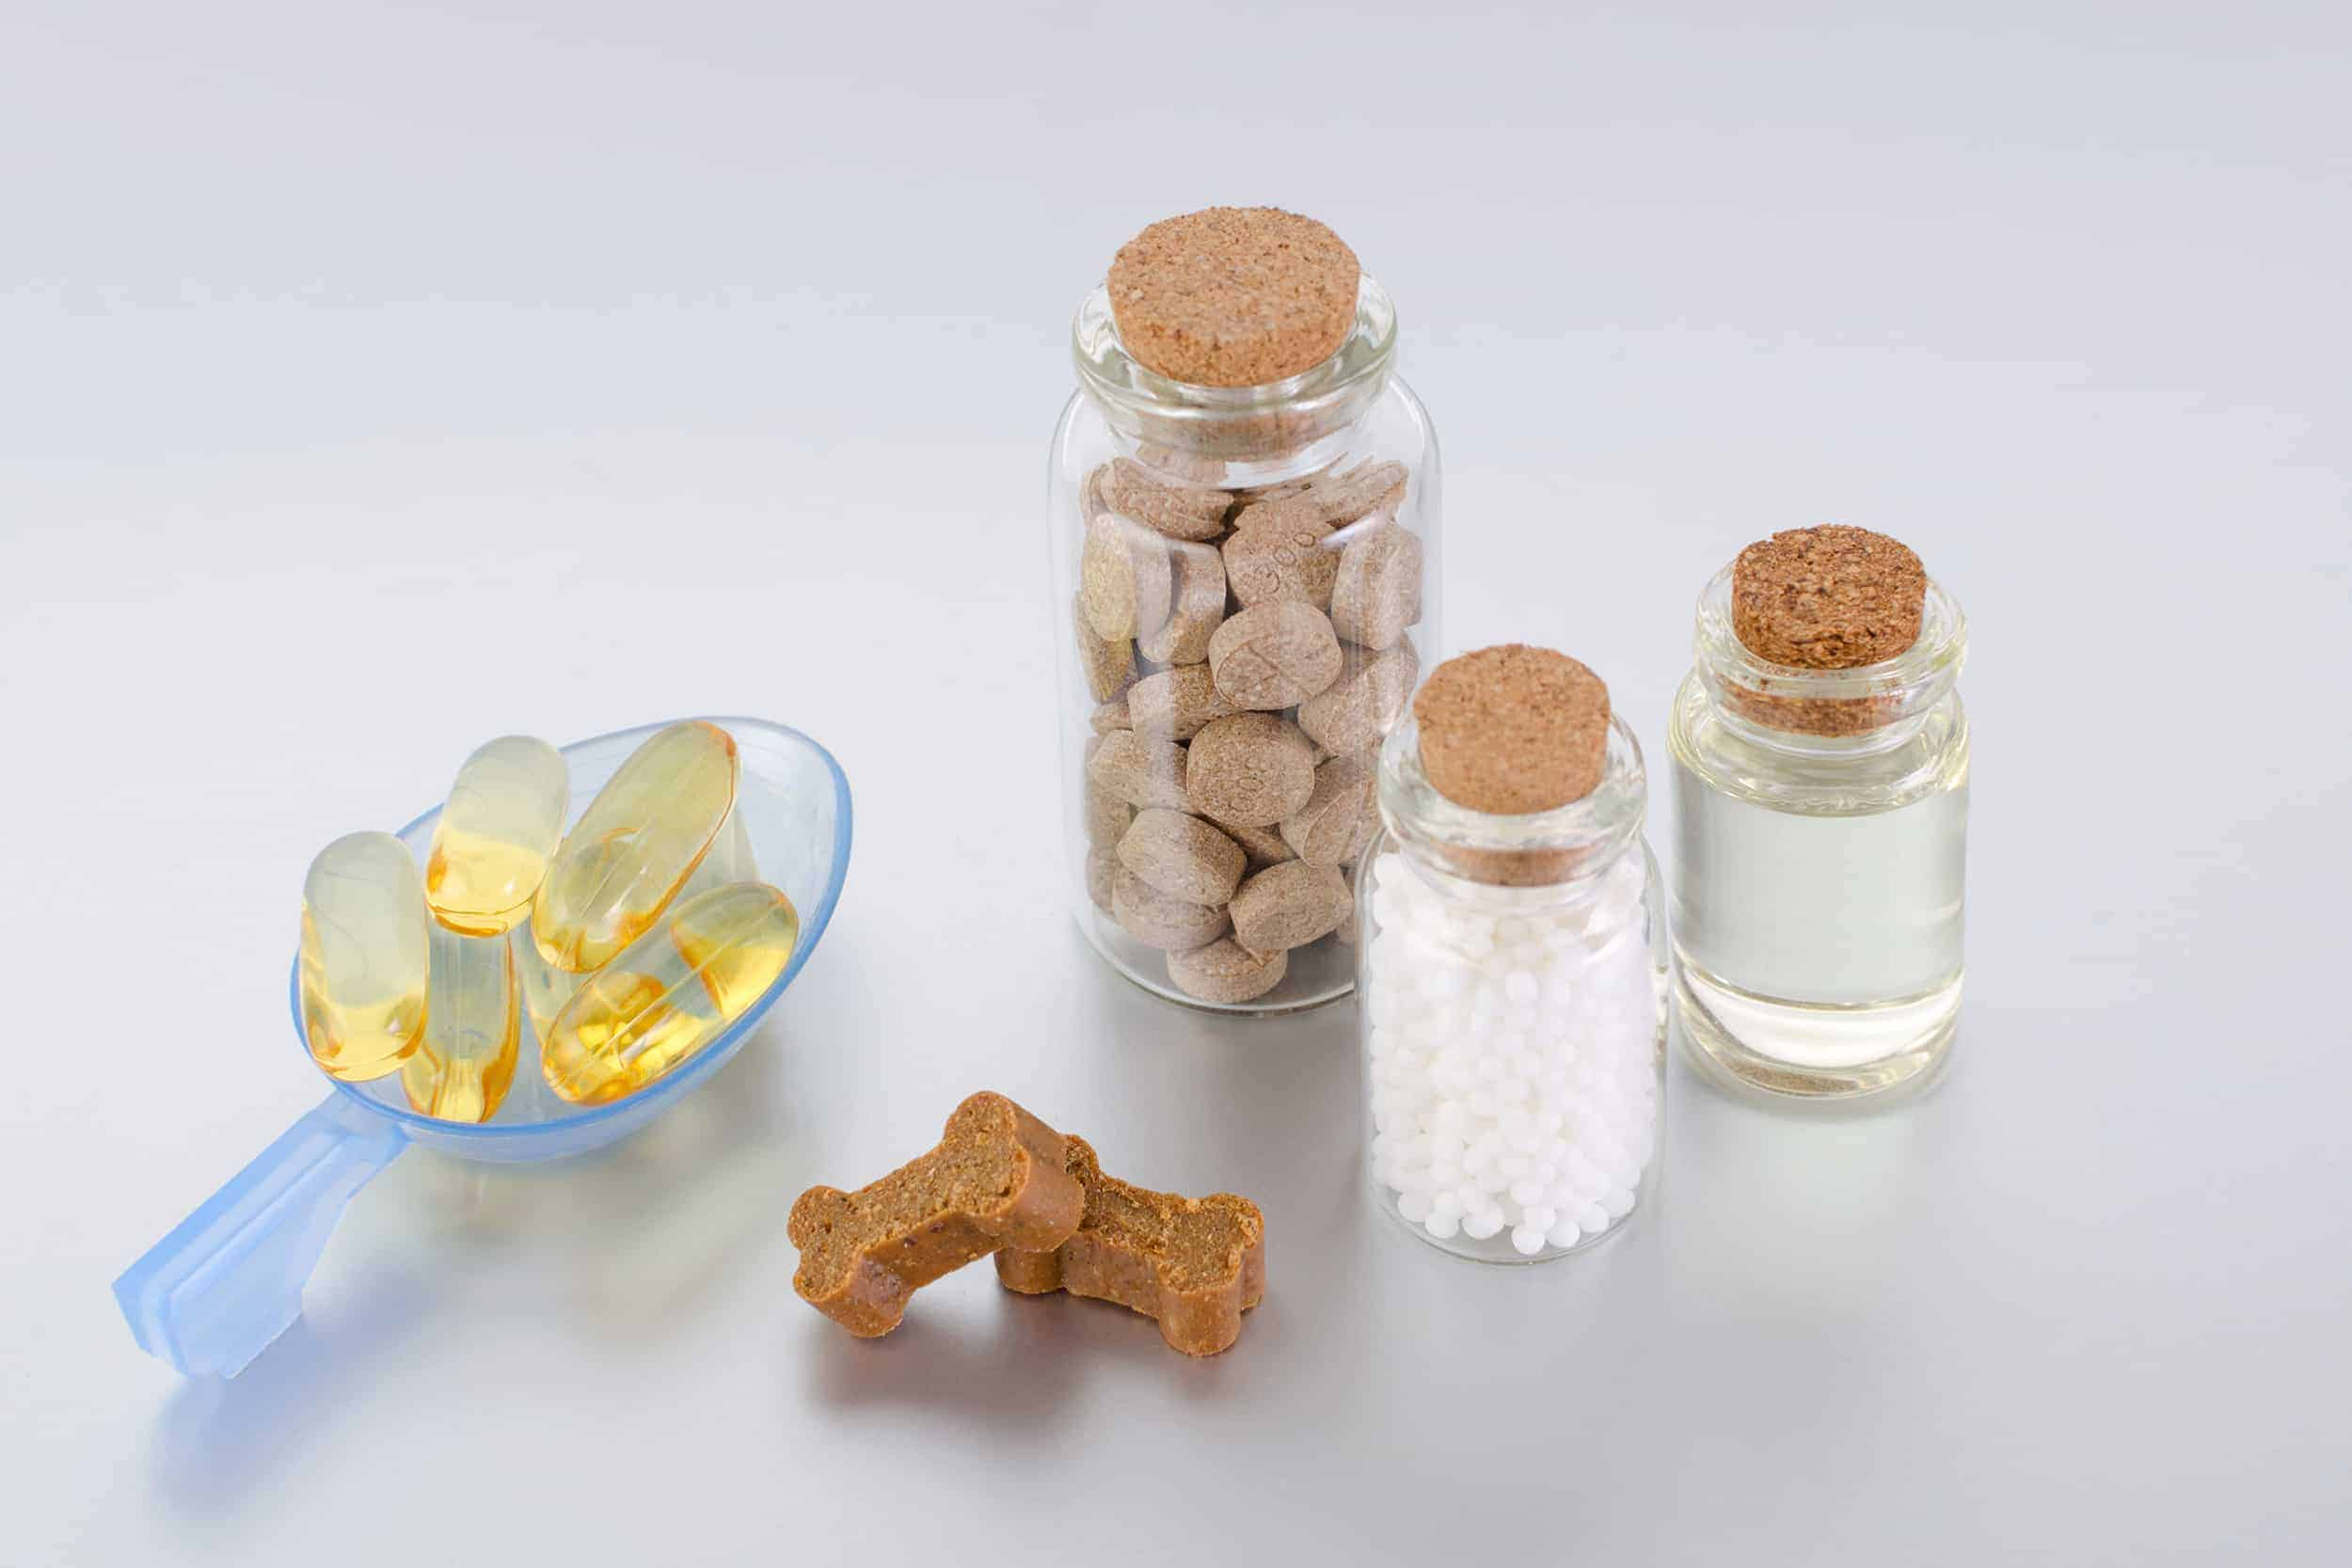 CBD options for dogs photo illustration shows capsules, dog treats, chews, pills, and CBD oil.